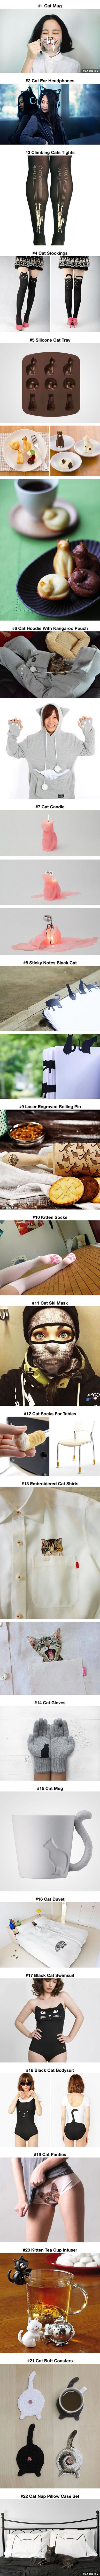 22 Purrfect Gift Ideas For Cat Lovers